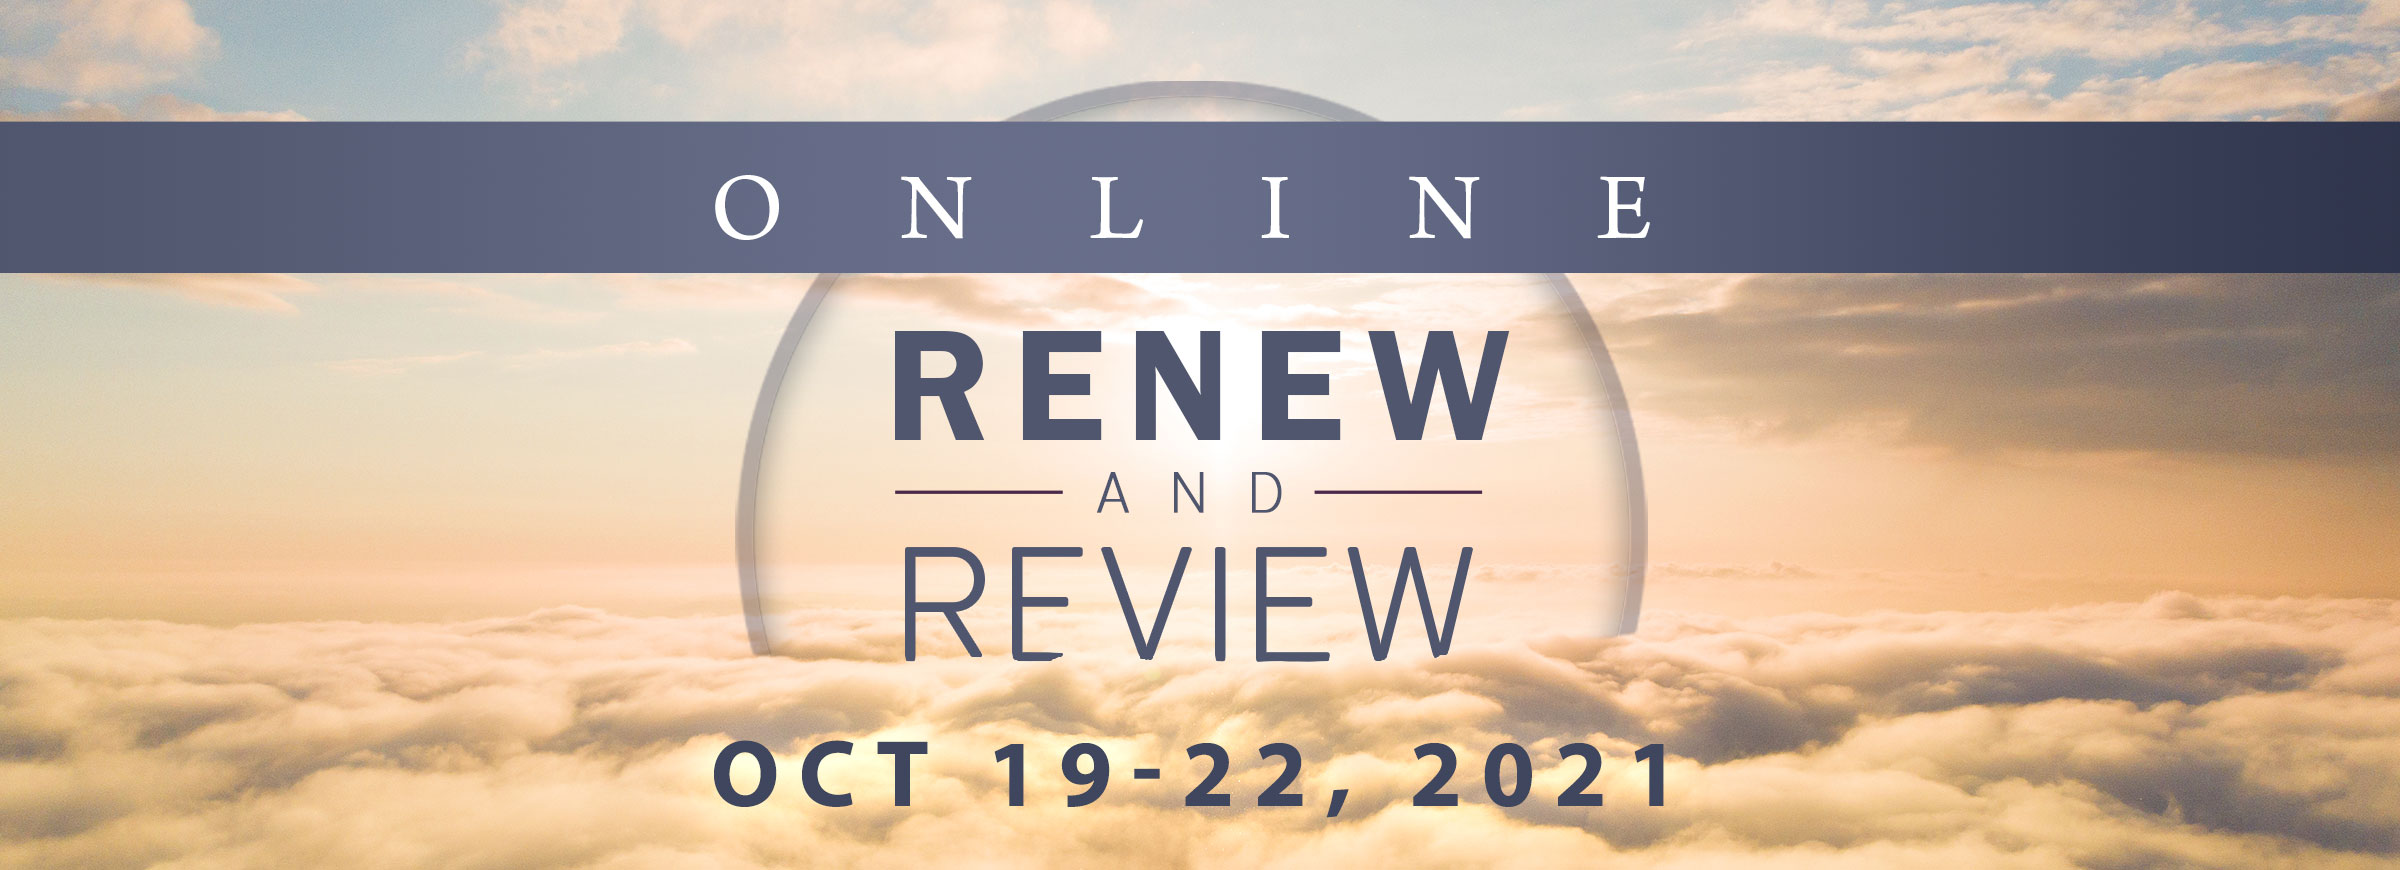 Renew and Review Online Oct 2021